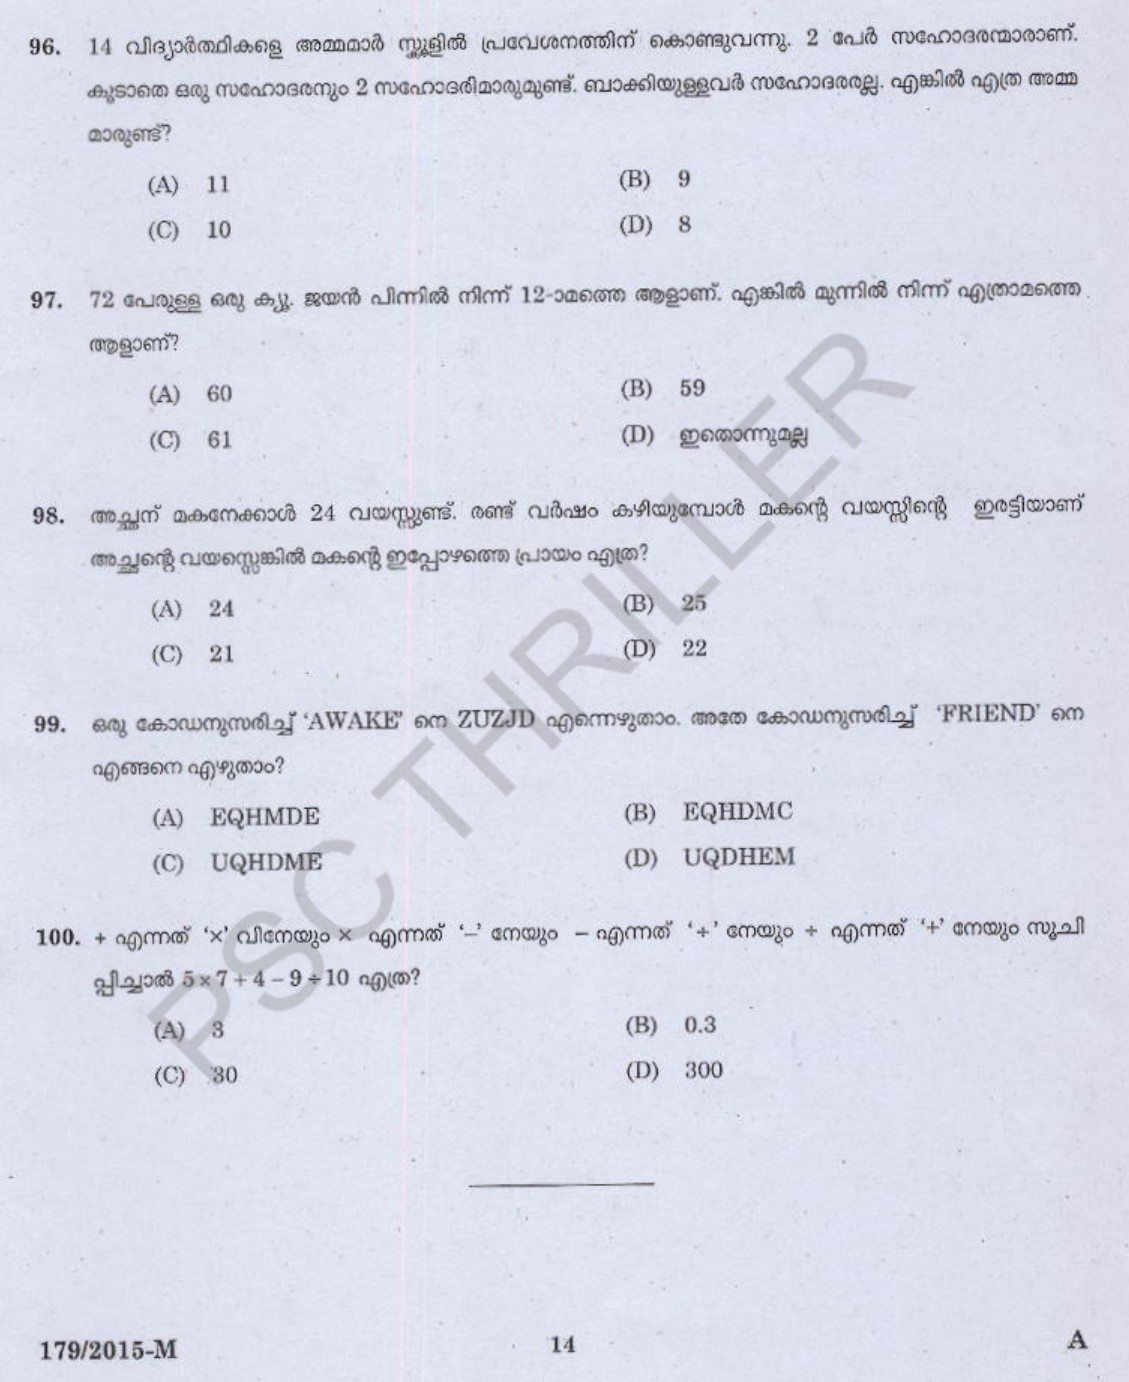 Police Constable -Question Paper - 179/2015 - Kerala PSC